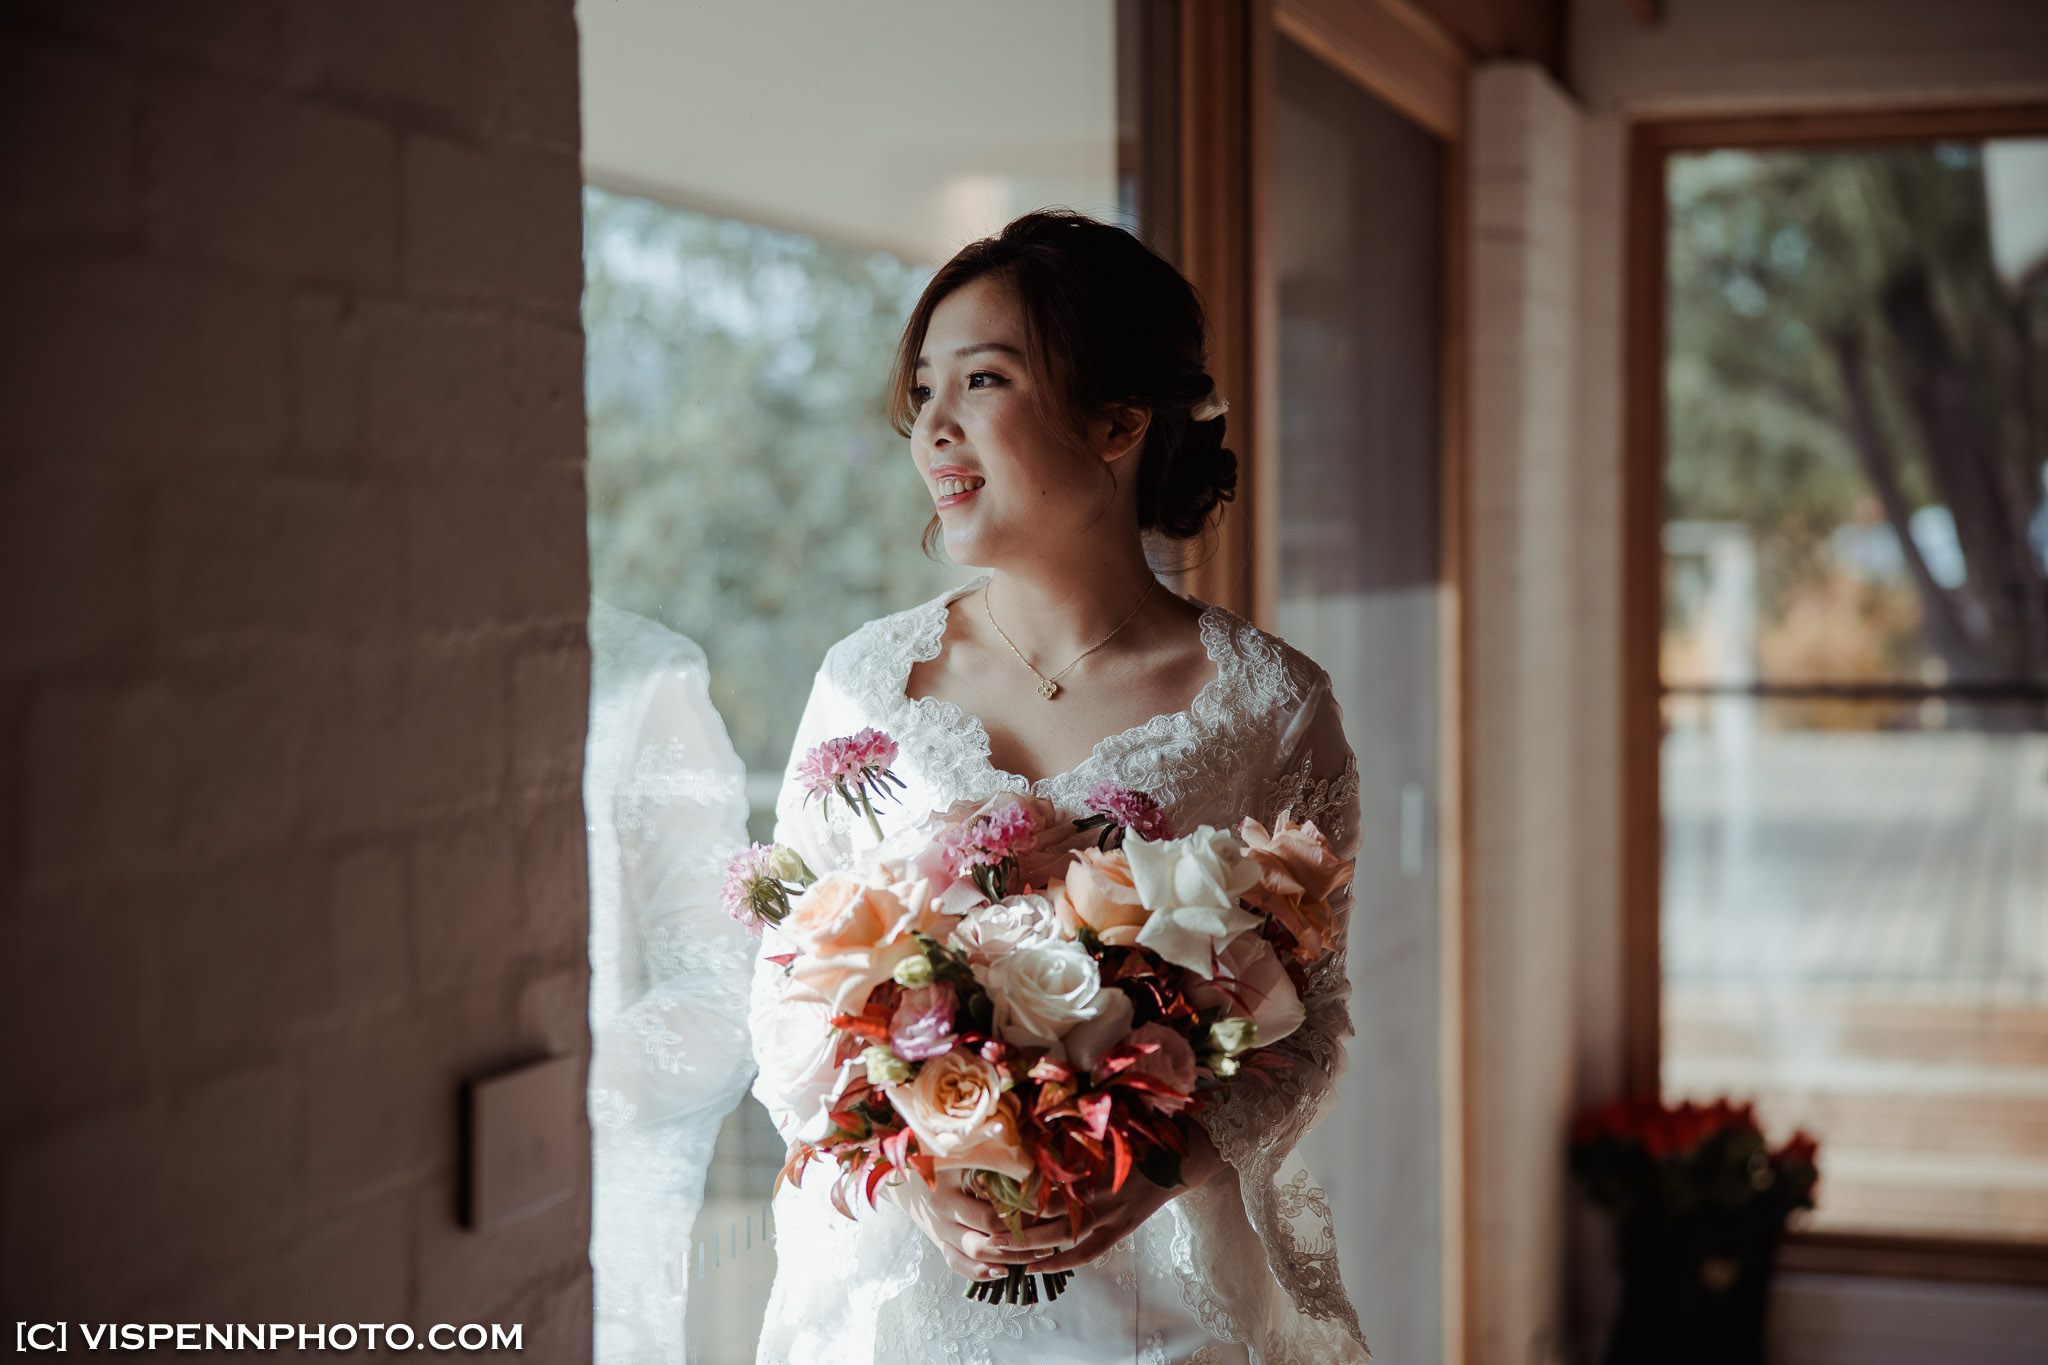 WEDDING DAY Photography Melbourne VISPENN 墨尔本 婚礼跟拍 婚礼摄像 婚礼摄影 结婚照 登记照 DominicHelen 1P 2213 EOSR VISPENN